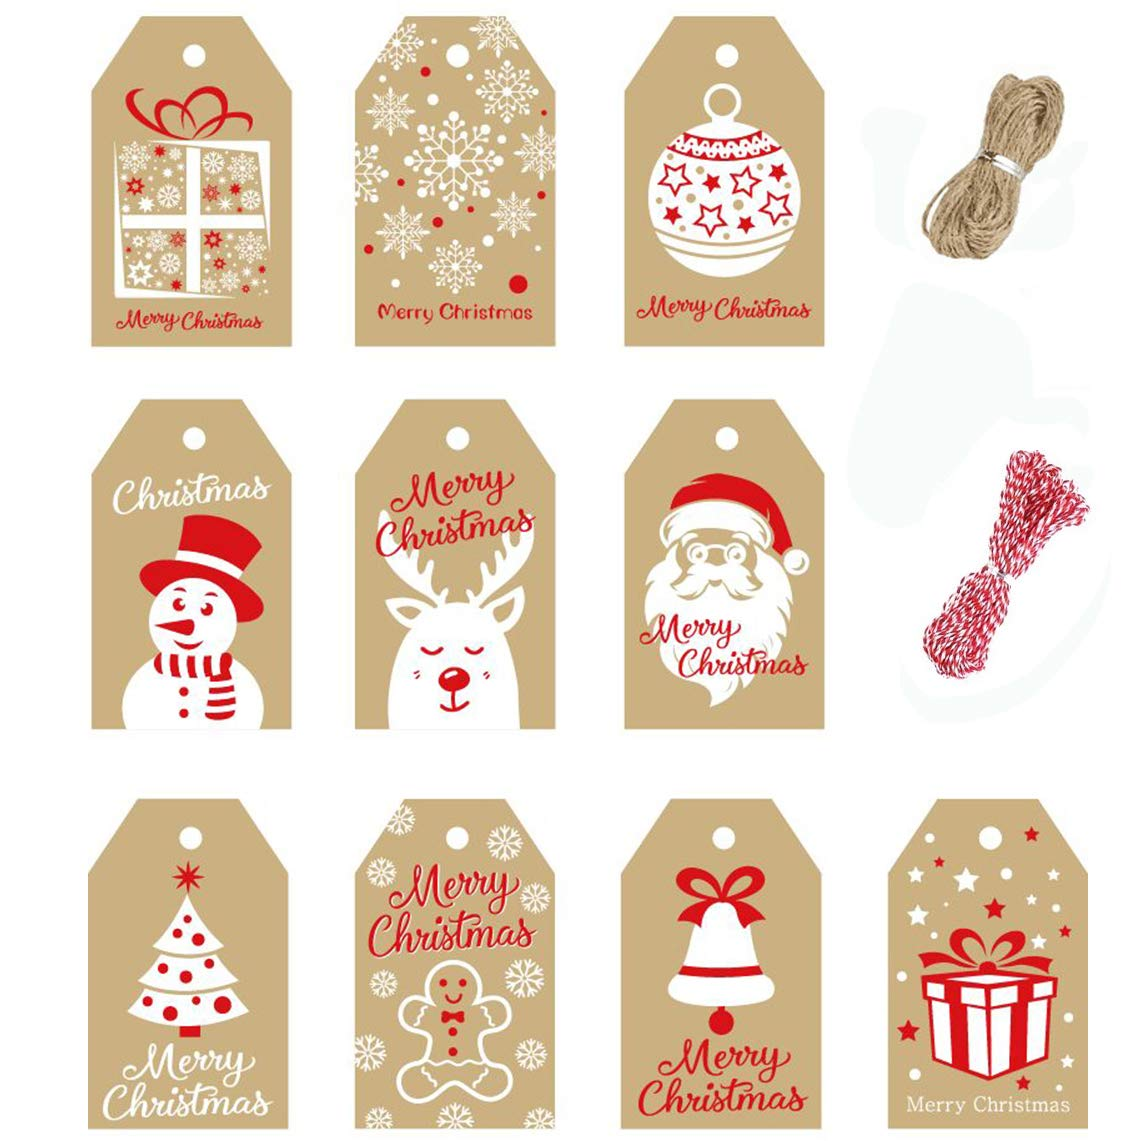 VEYLIN 200 Pcs Christmas Paper Gift Tags Christmas Hang Name Tags Label with Twine for DIY Xmas Present